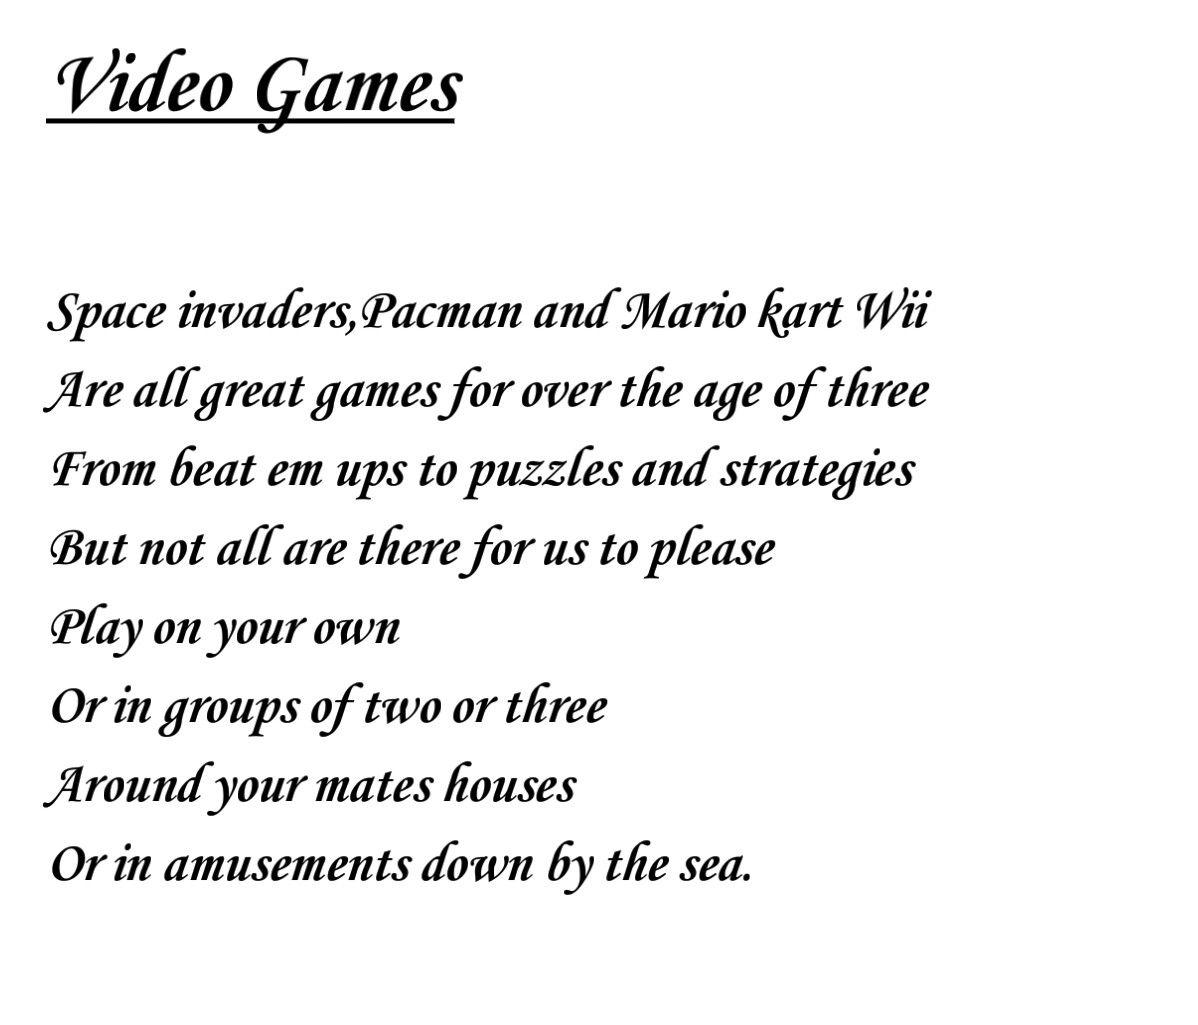 Porky reccomend Poems about video games